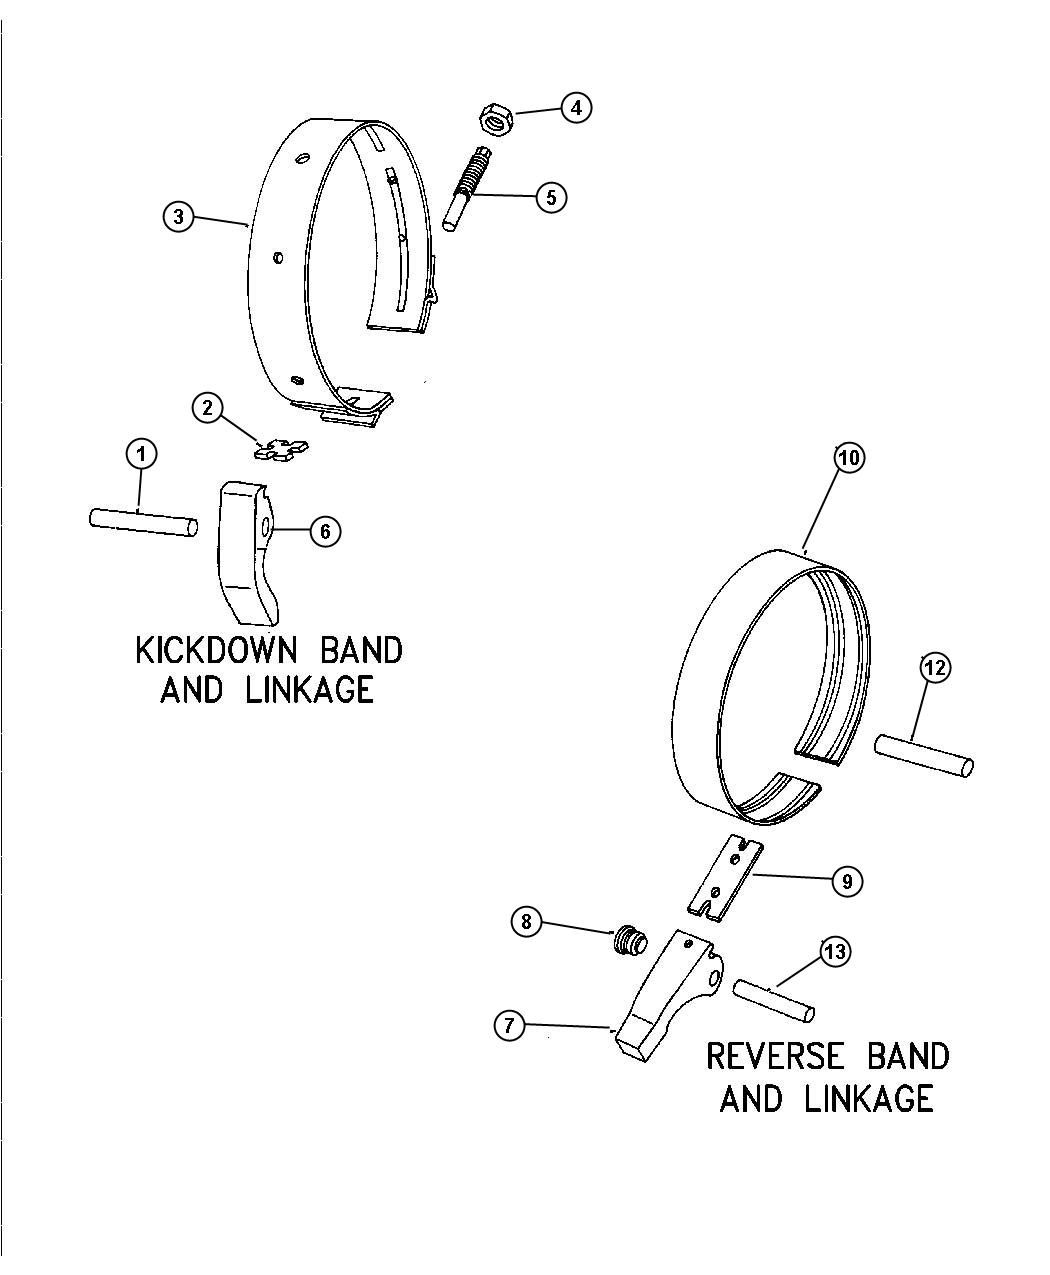 Plymouth Voyager Lever  Reverse Band  Europe  Integral  W